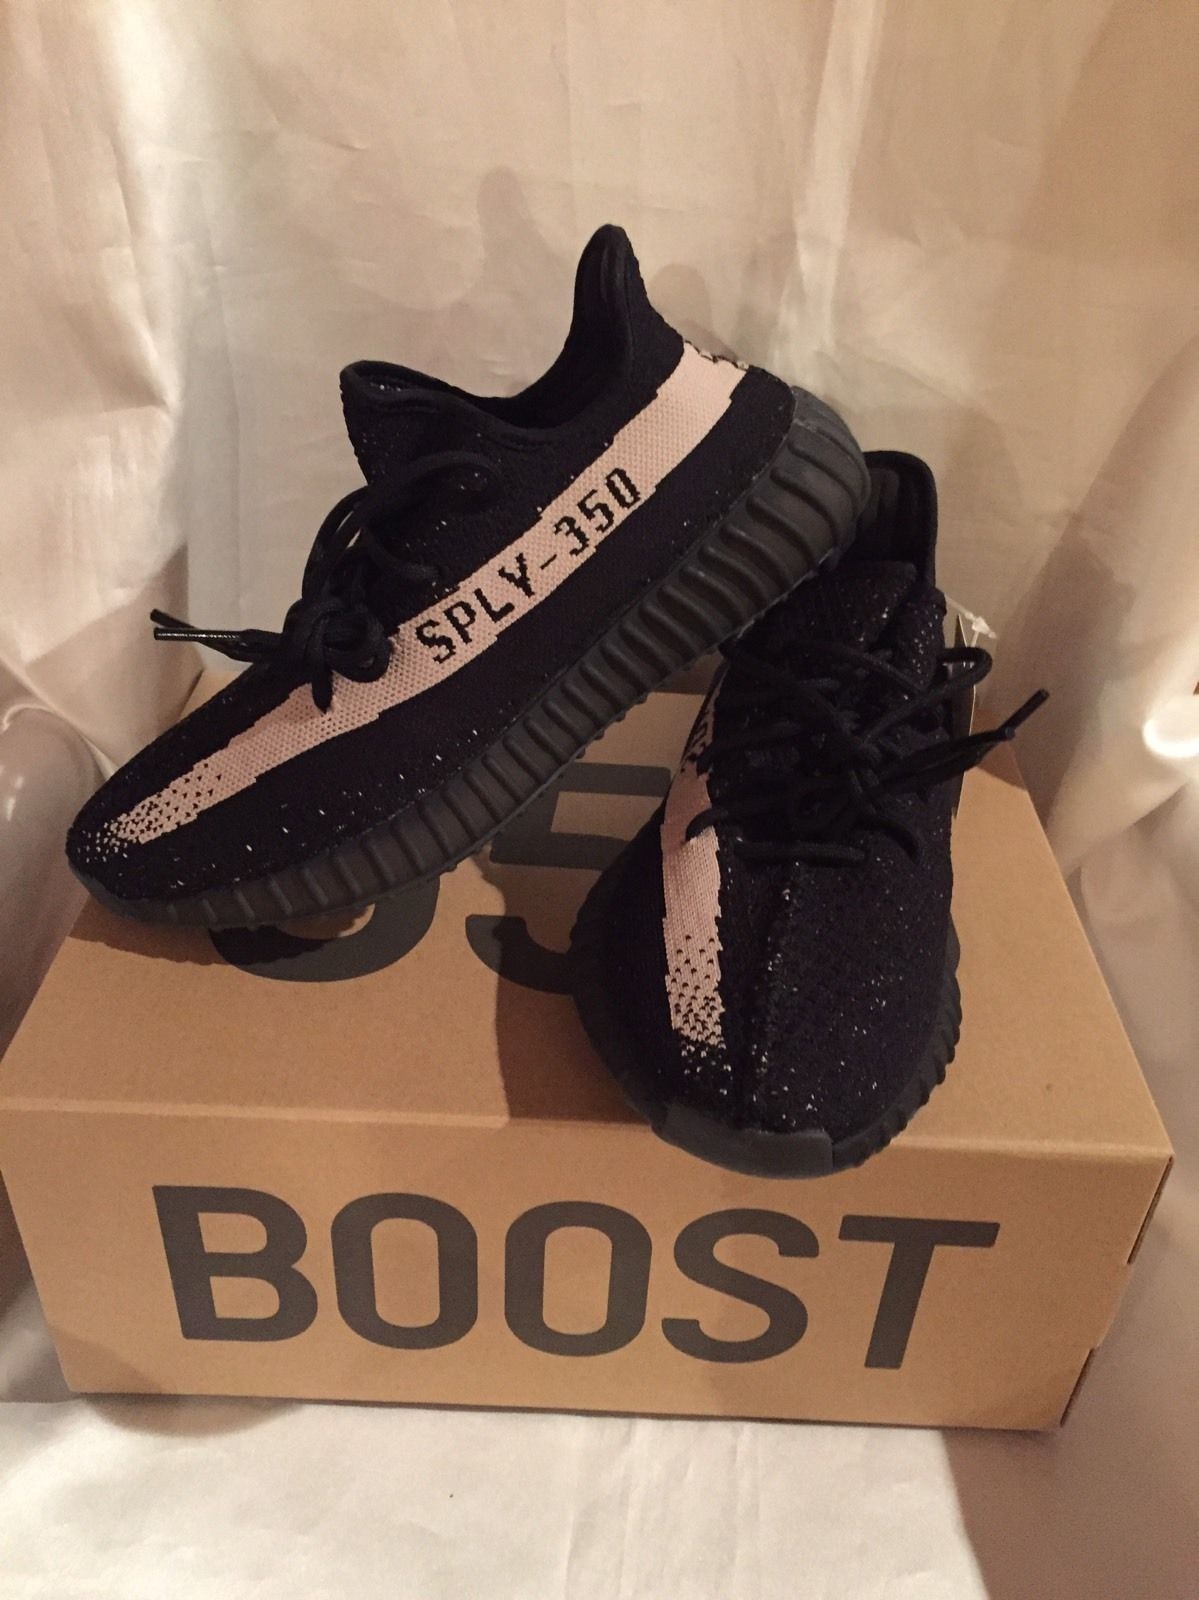 5f5afe73f343f Adidas Yeezy Boost 350 V2 Core Black White Sz 9 US YZY Kanye In Hand ...